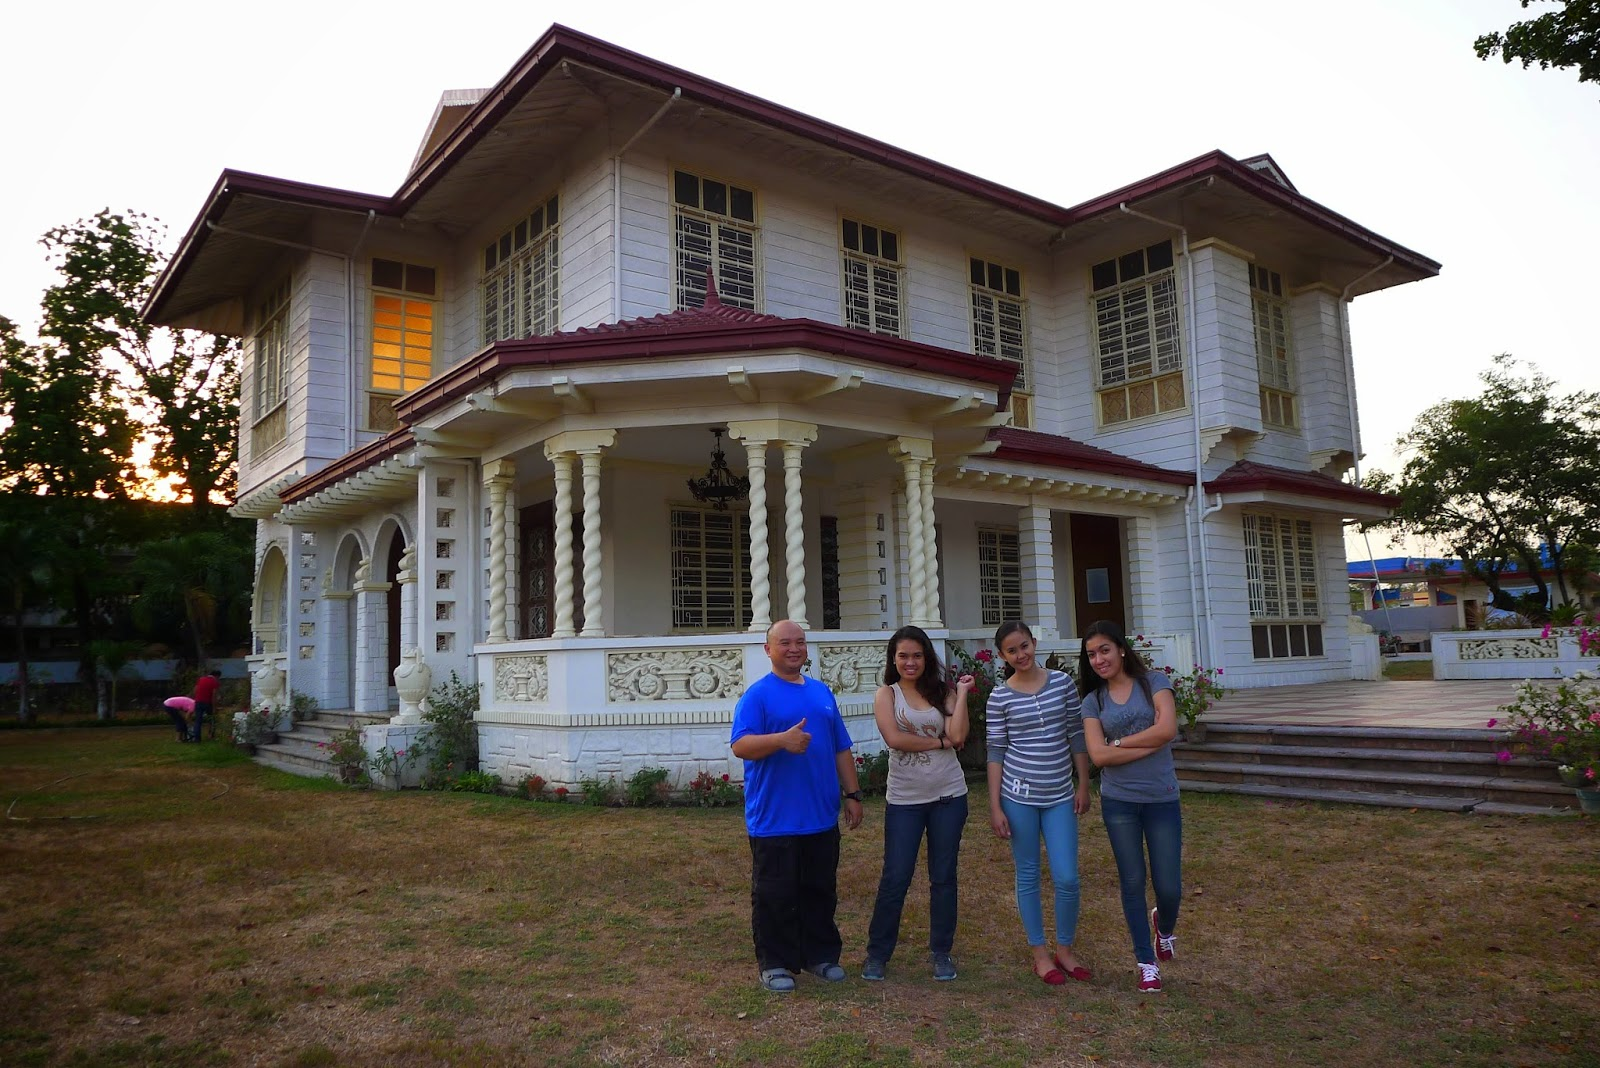 The Aquino ancestral house dates back to 1939